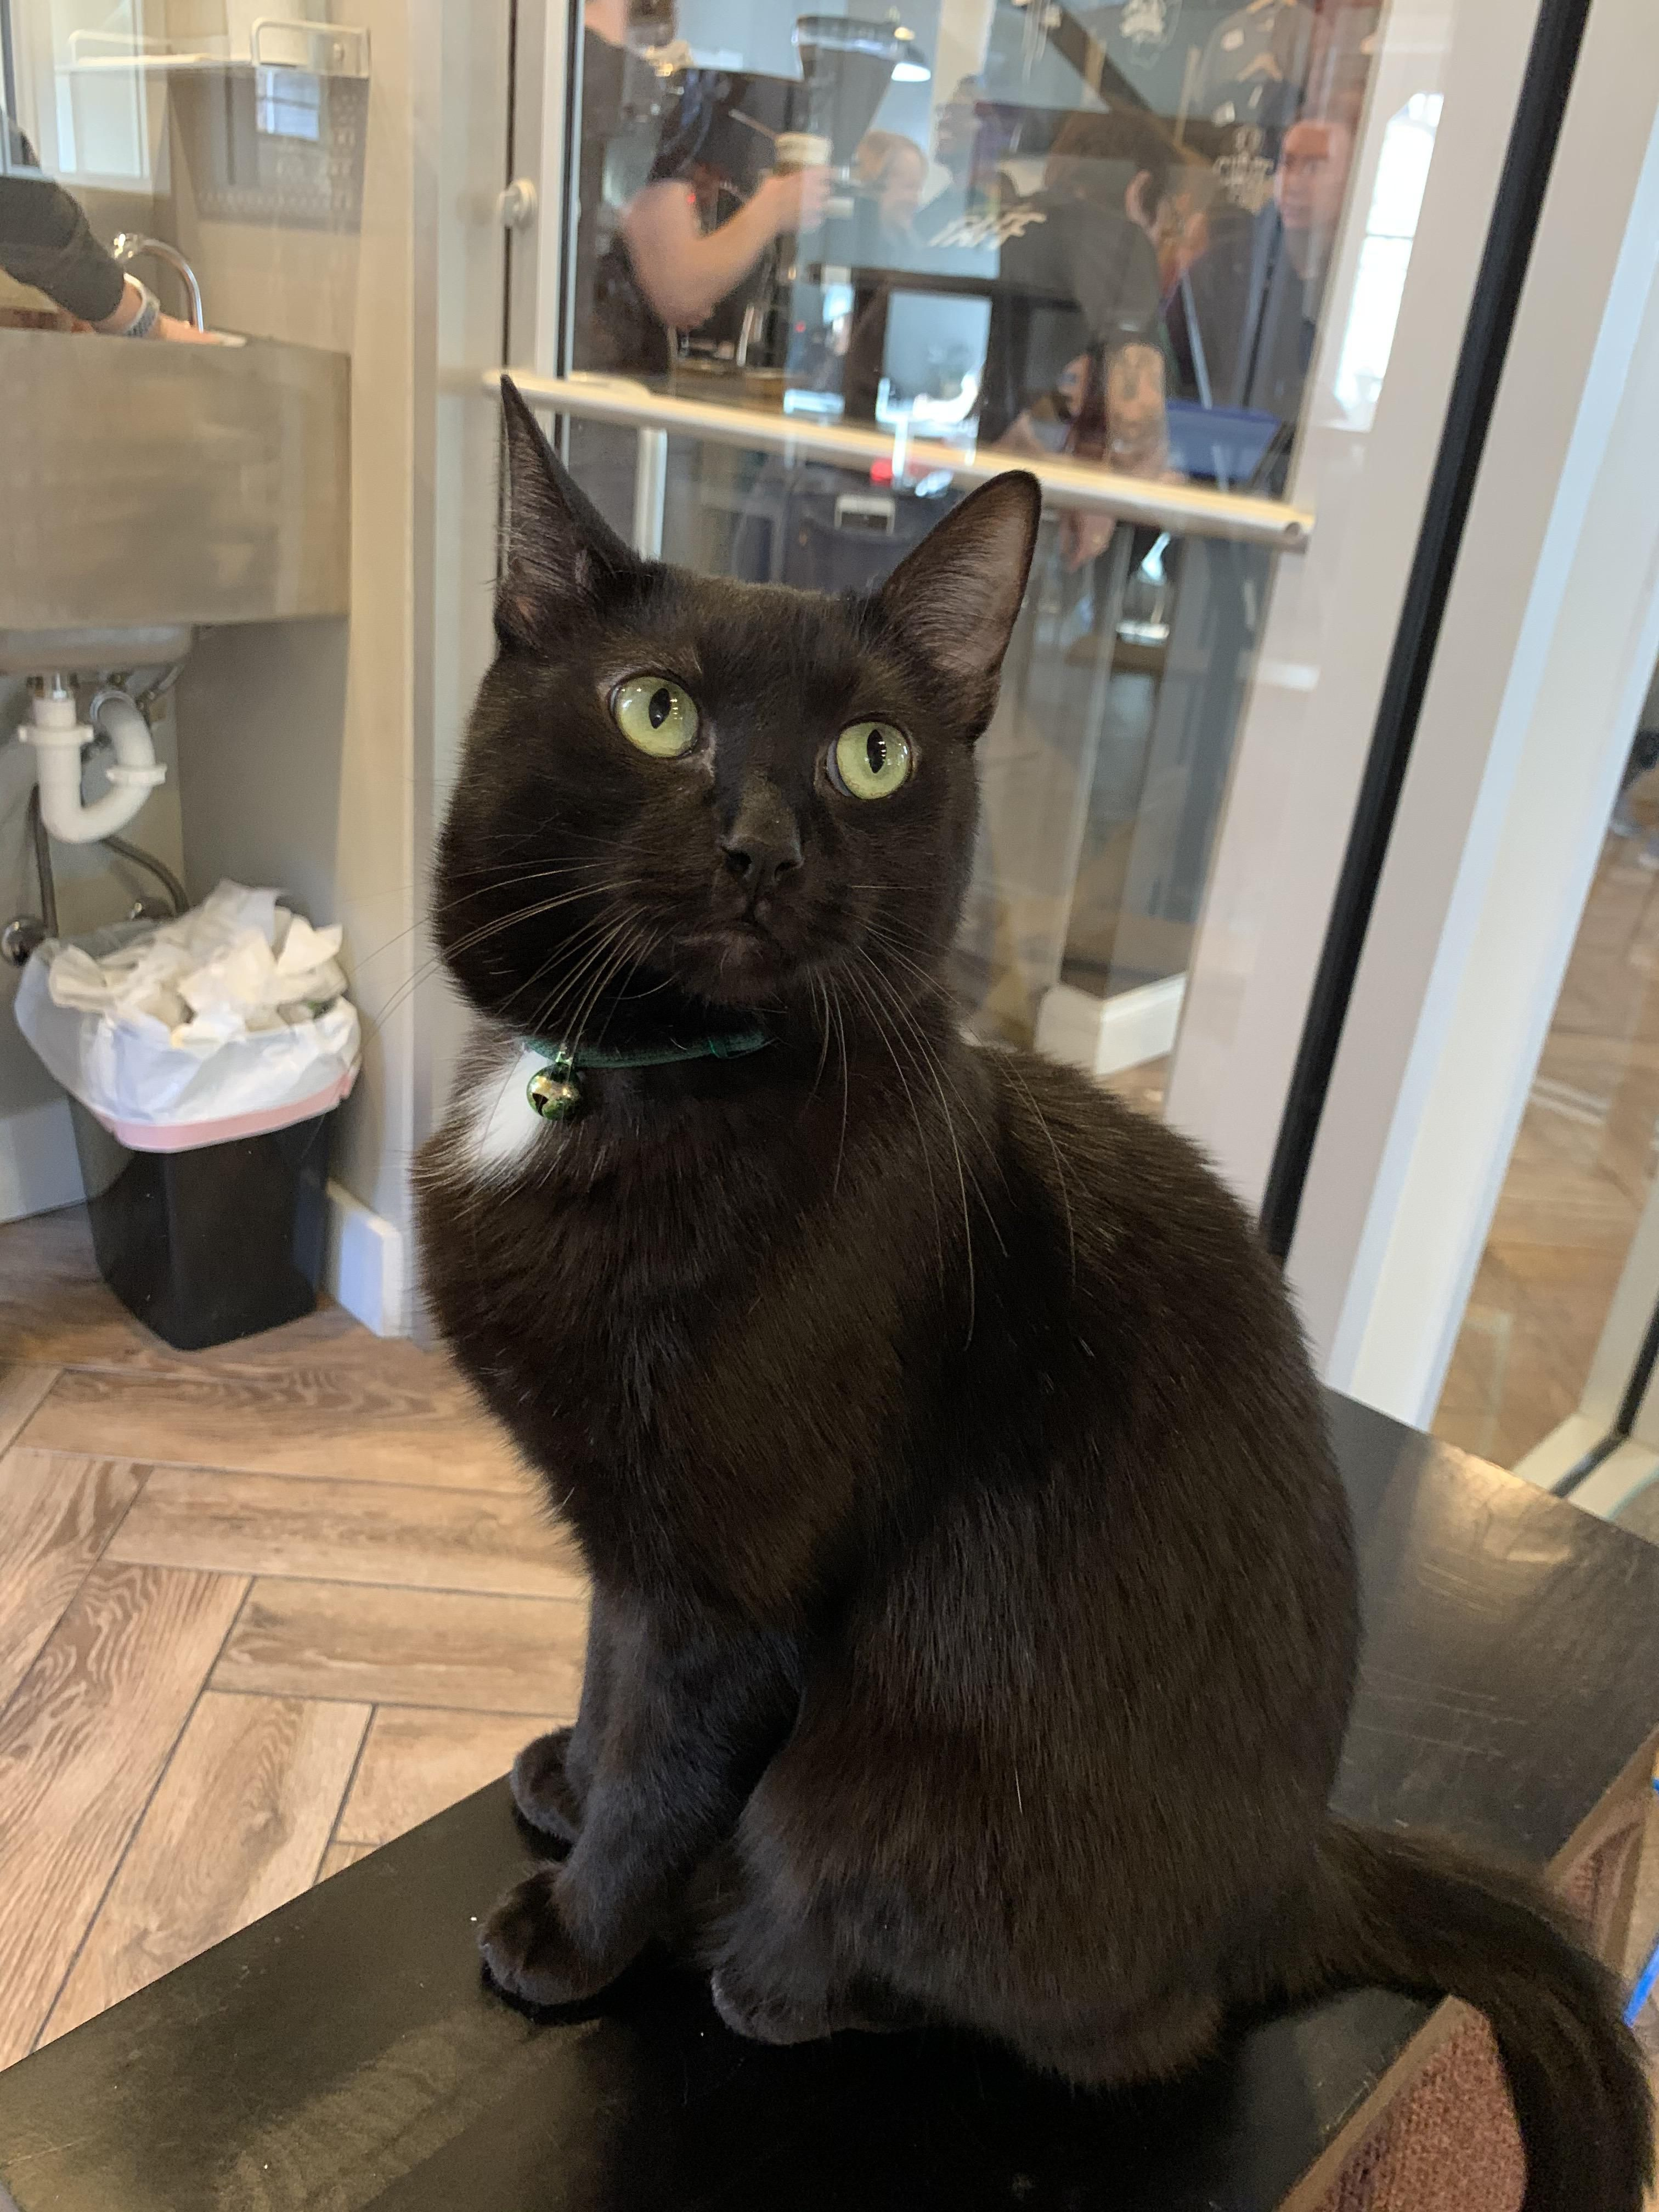 Found At A Cat Cafe In My City Teelast Com In 2020 Cats Kittens Cutest Cat Cafe